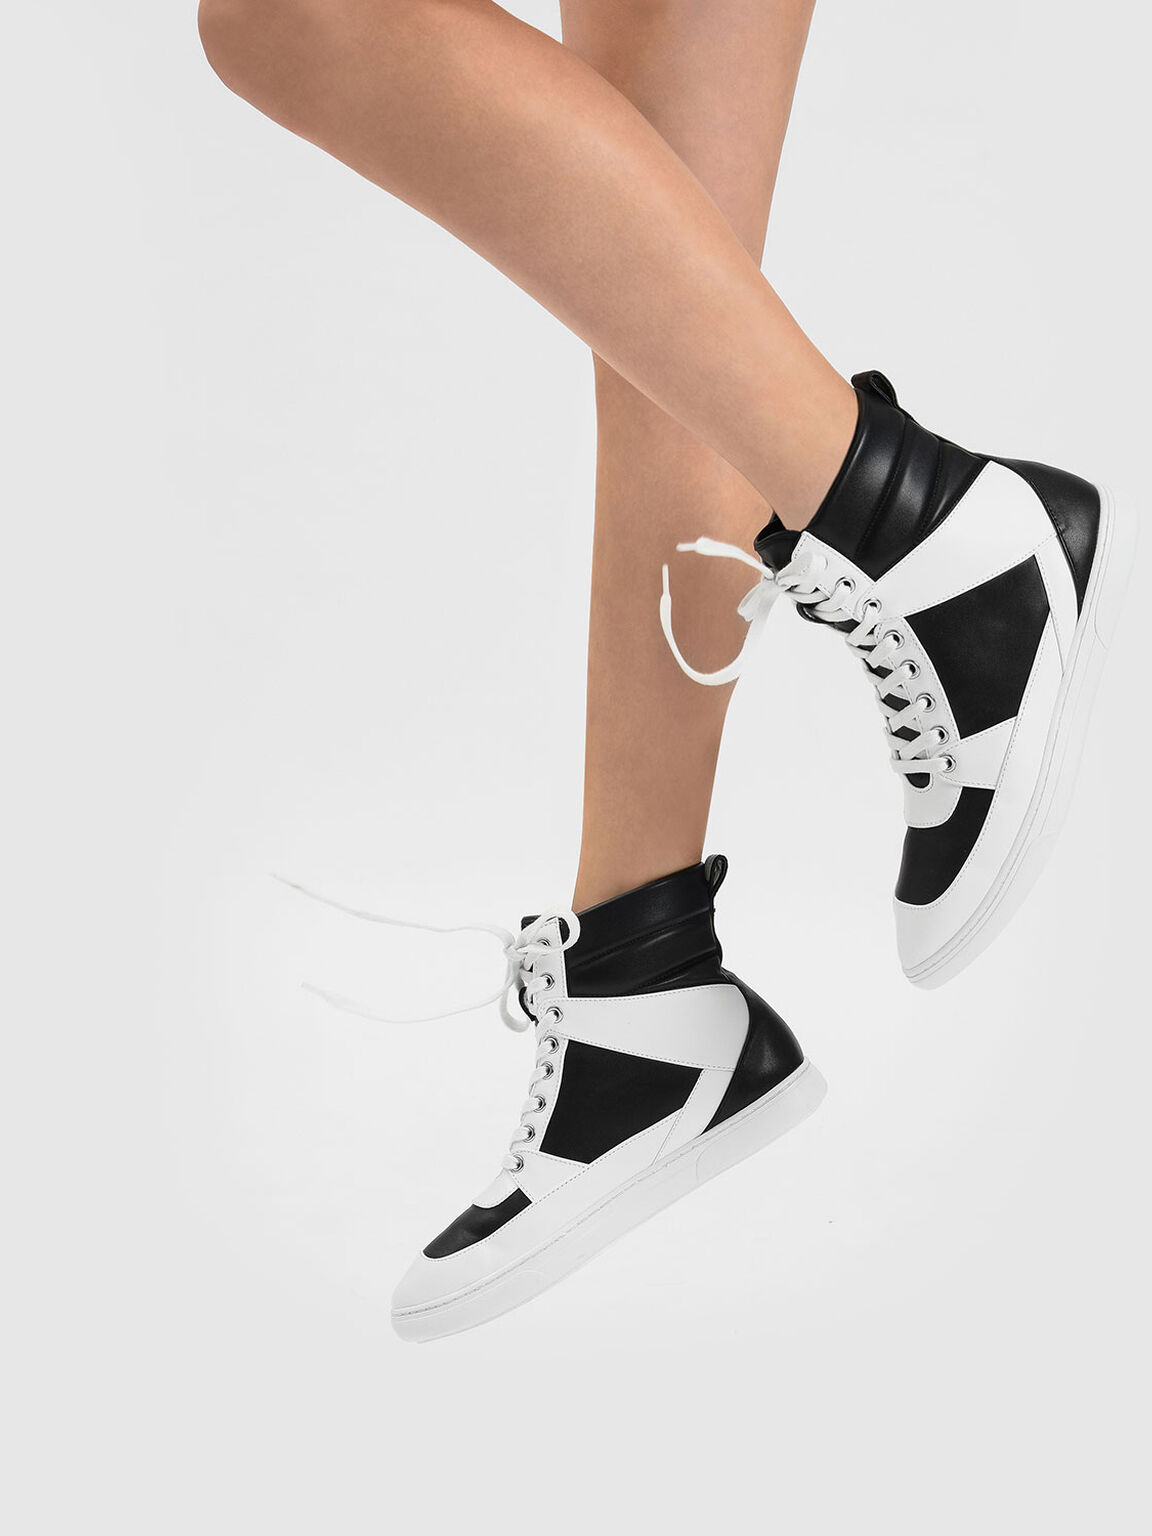 Pointed High Cut Sneakers, Black, hi-res